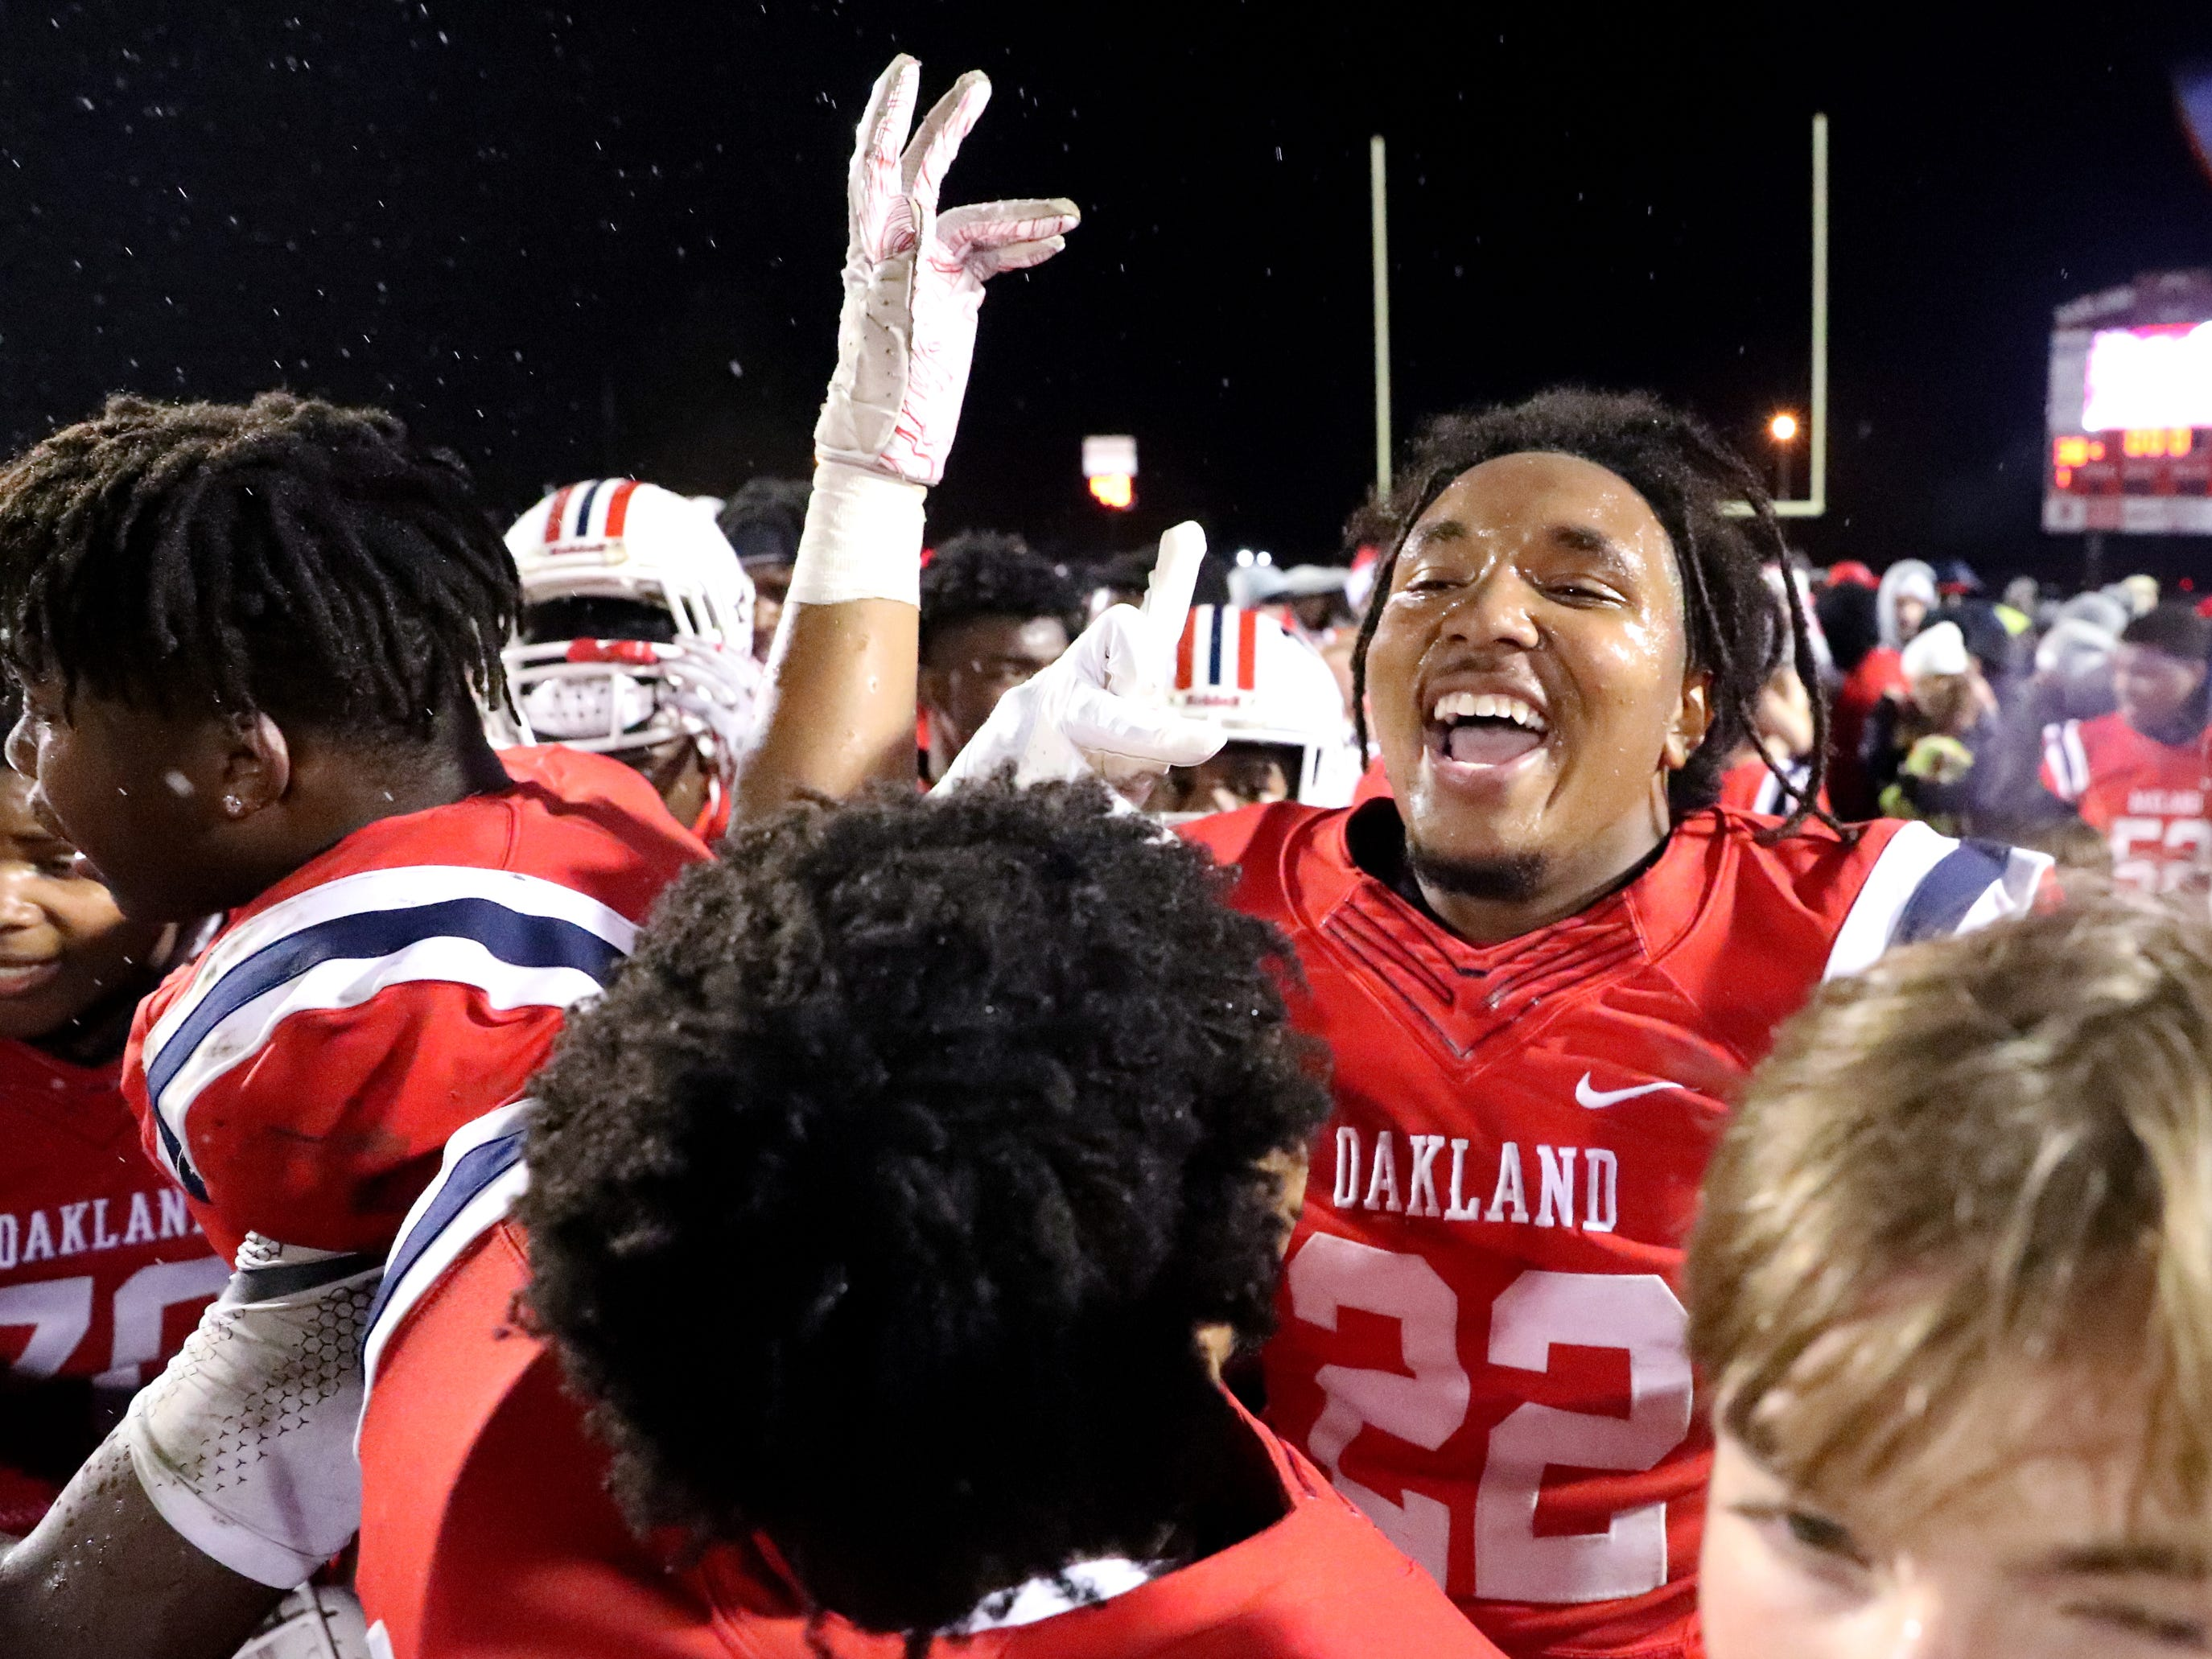 Oakland's Ronnie Rankins (22) celebrates beating Maryville 38-0 at Oakland in Murfreesboro, on Friday, Aug. 23 2018, during the 6A playoffs, and advancing to the State Tournament next Thrusday.